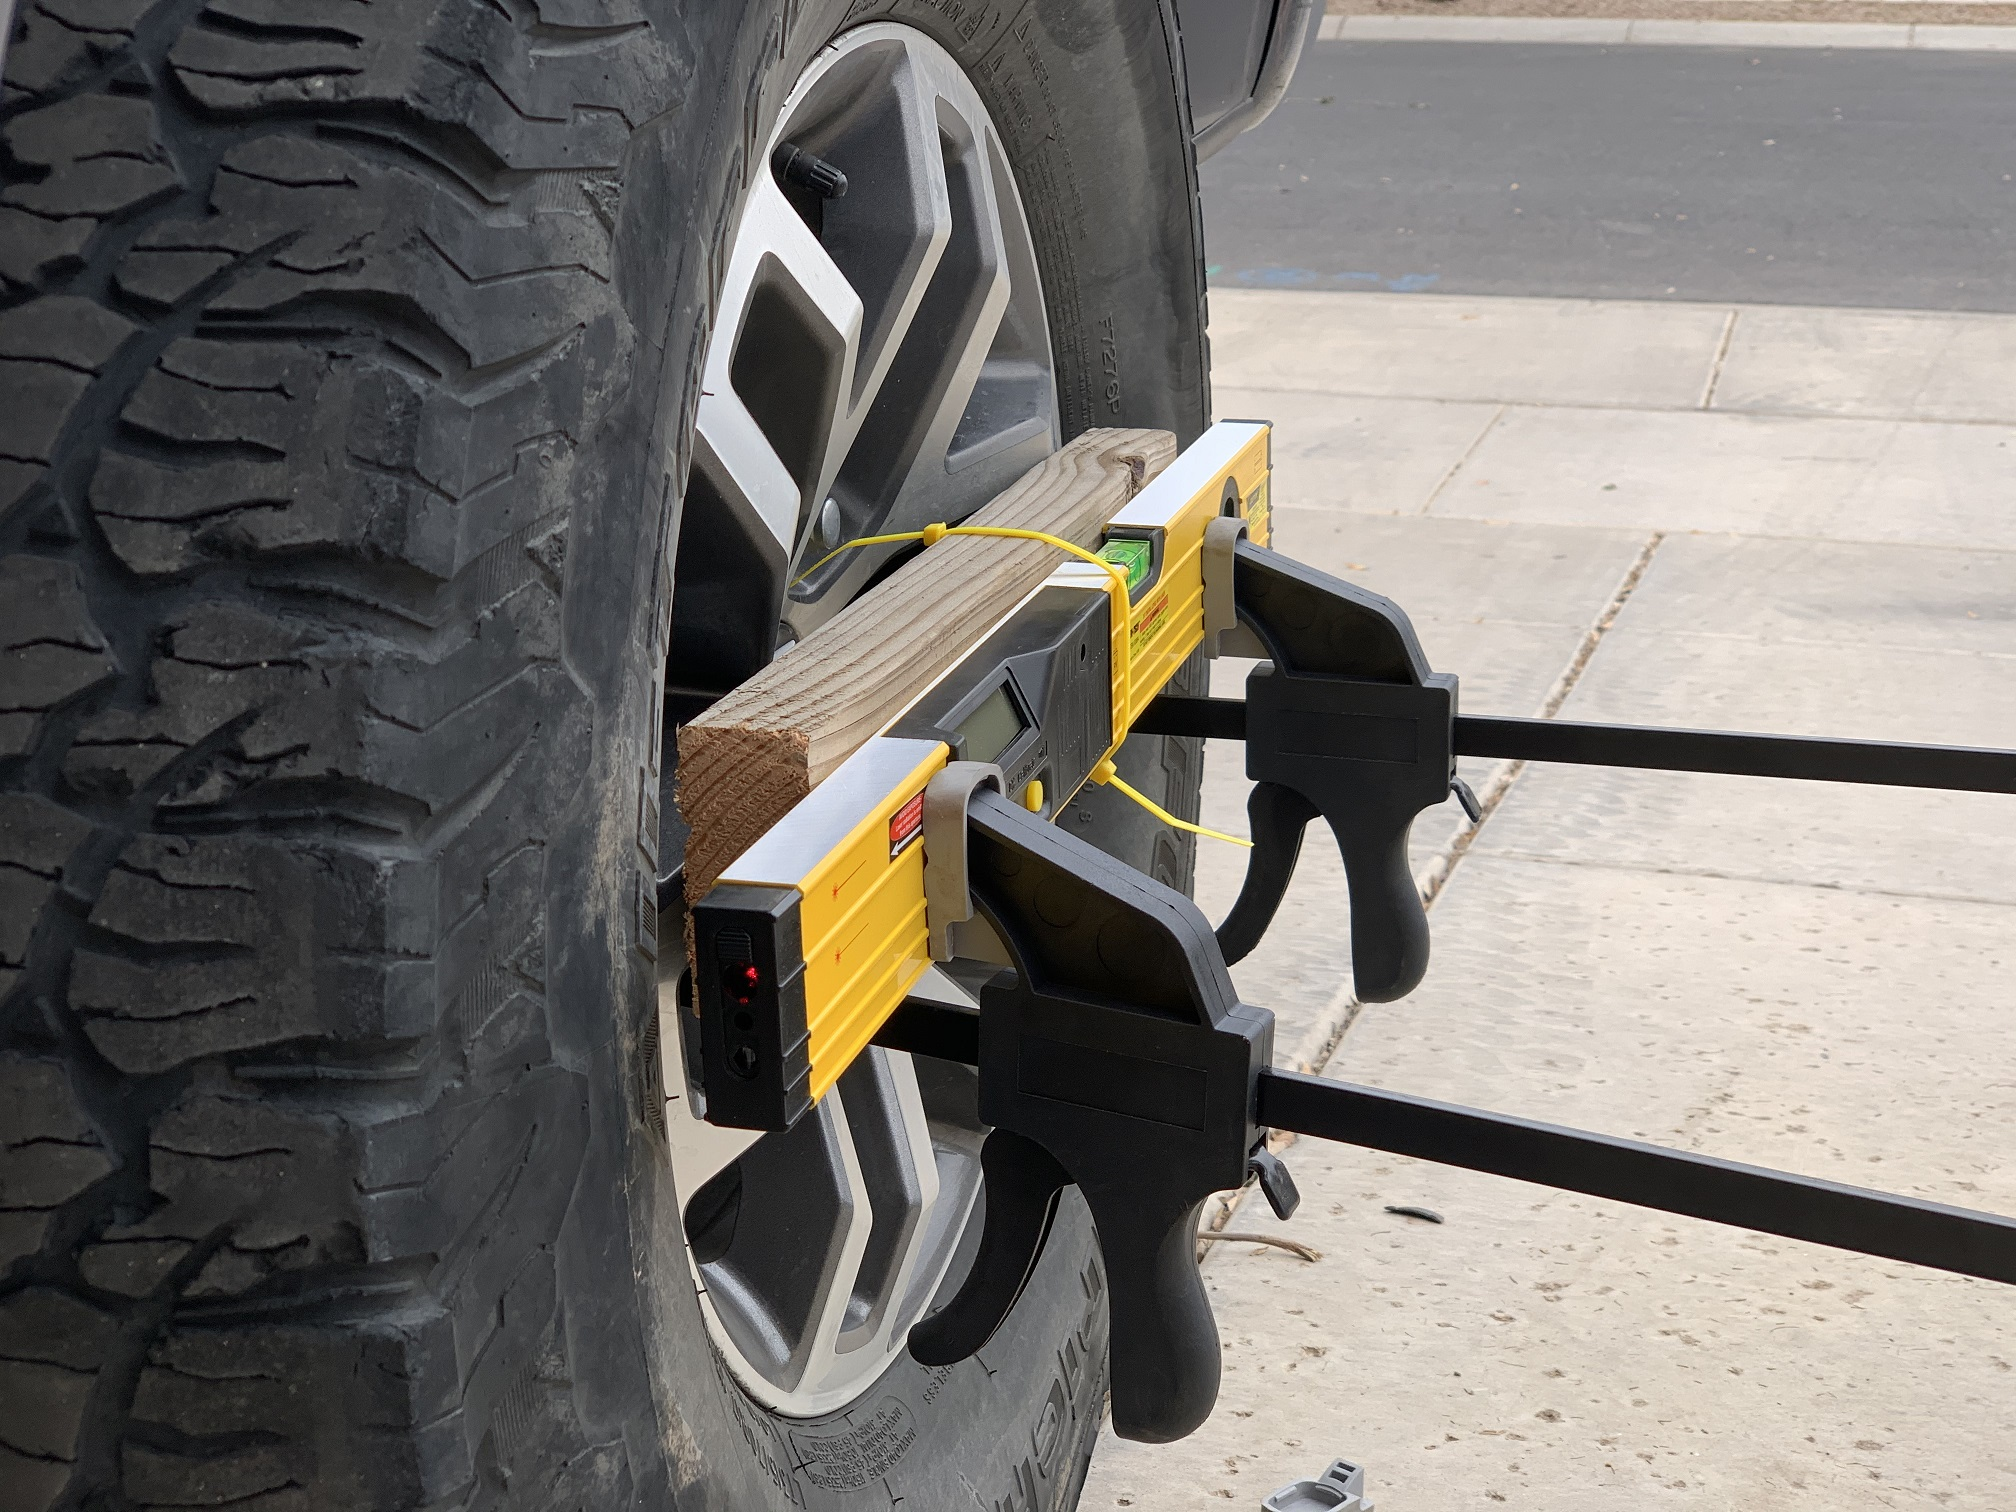 DIY Wheel Alignment – Laser Level